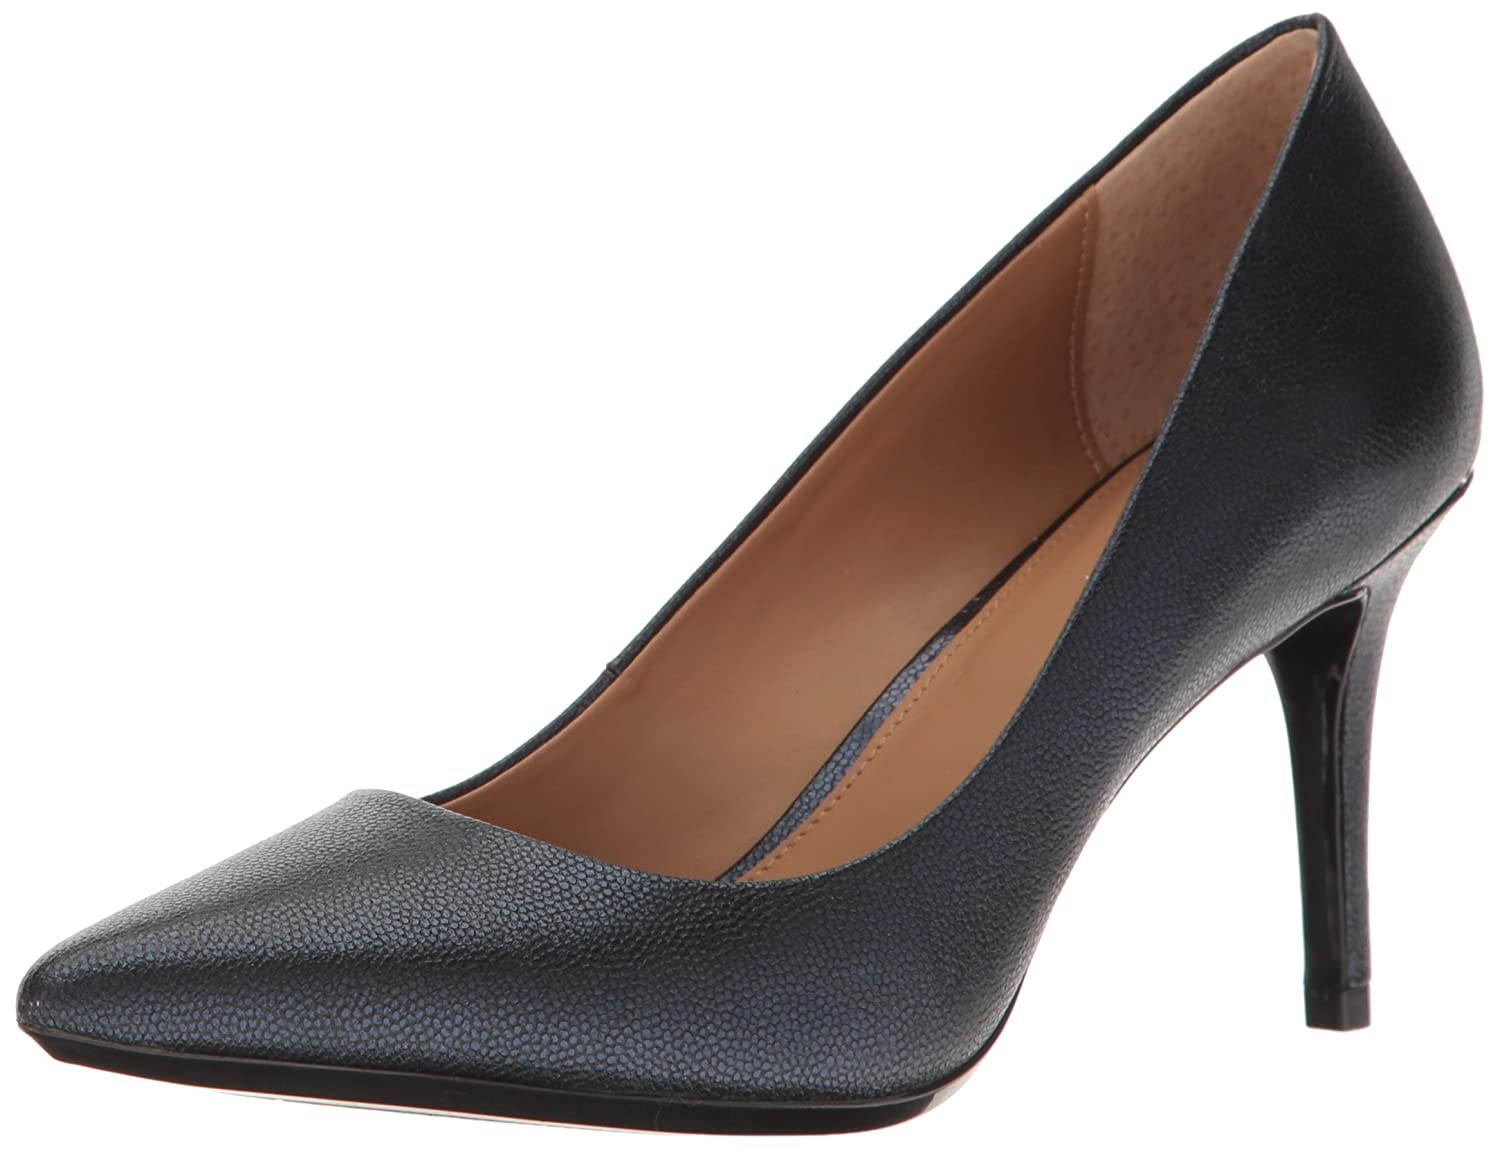 Calvin Klein Women's Gayle Pump B00LH03JW8 10 B(M) US|Navy Leather